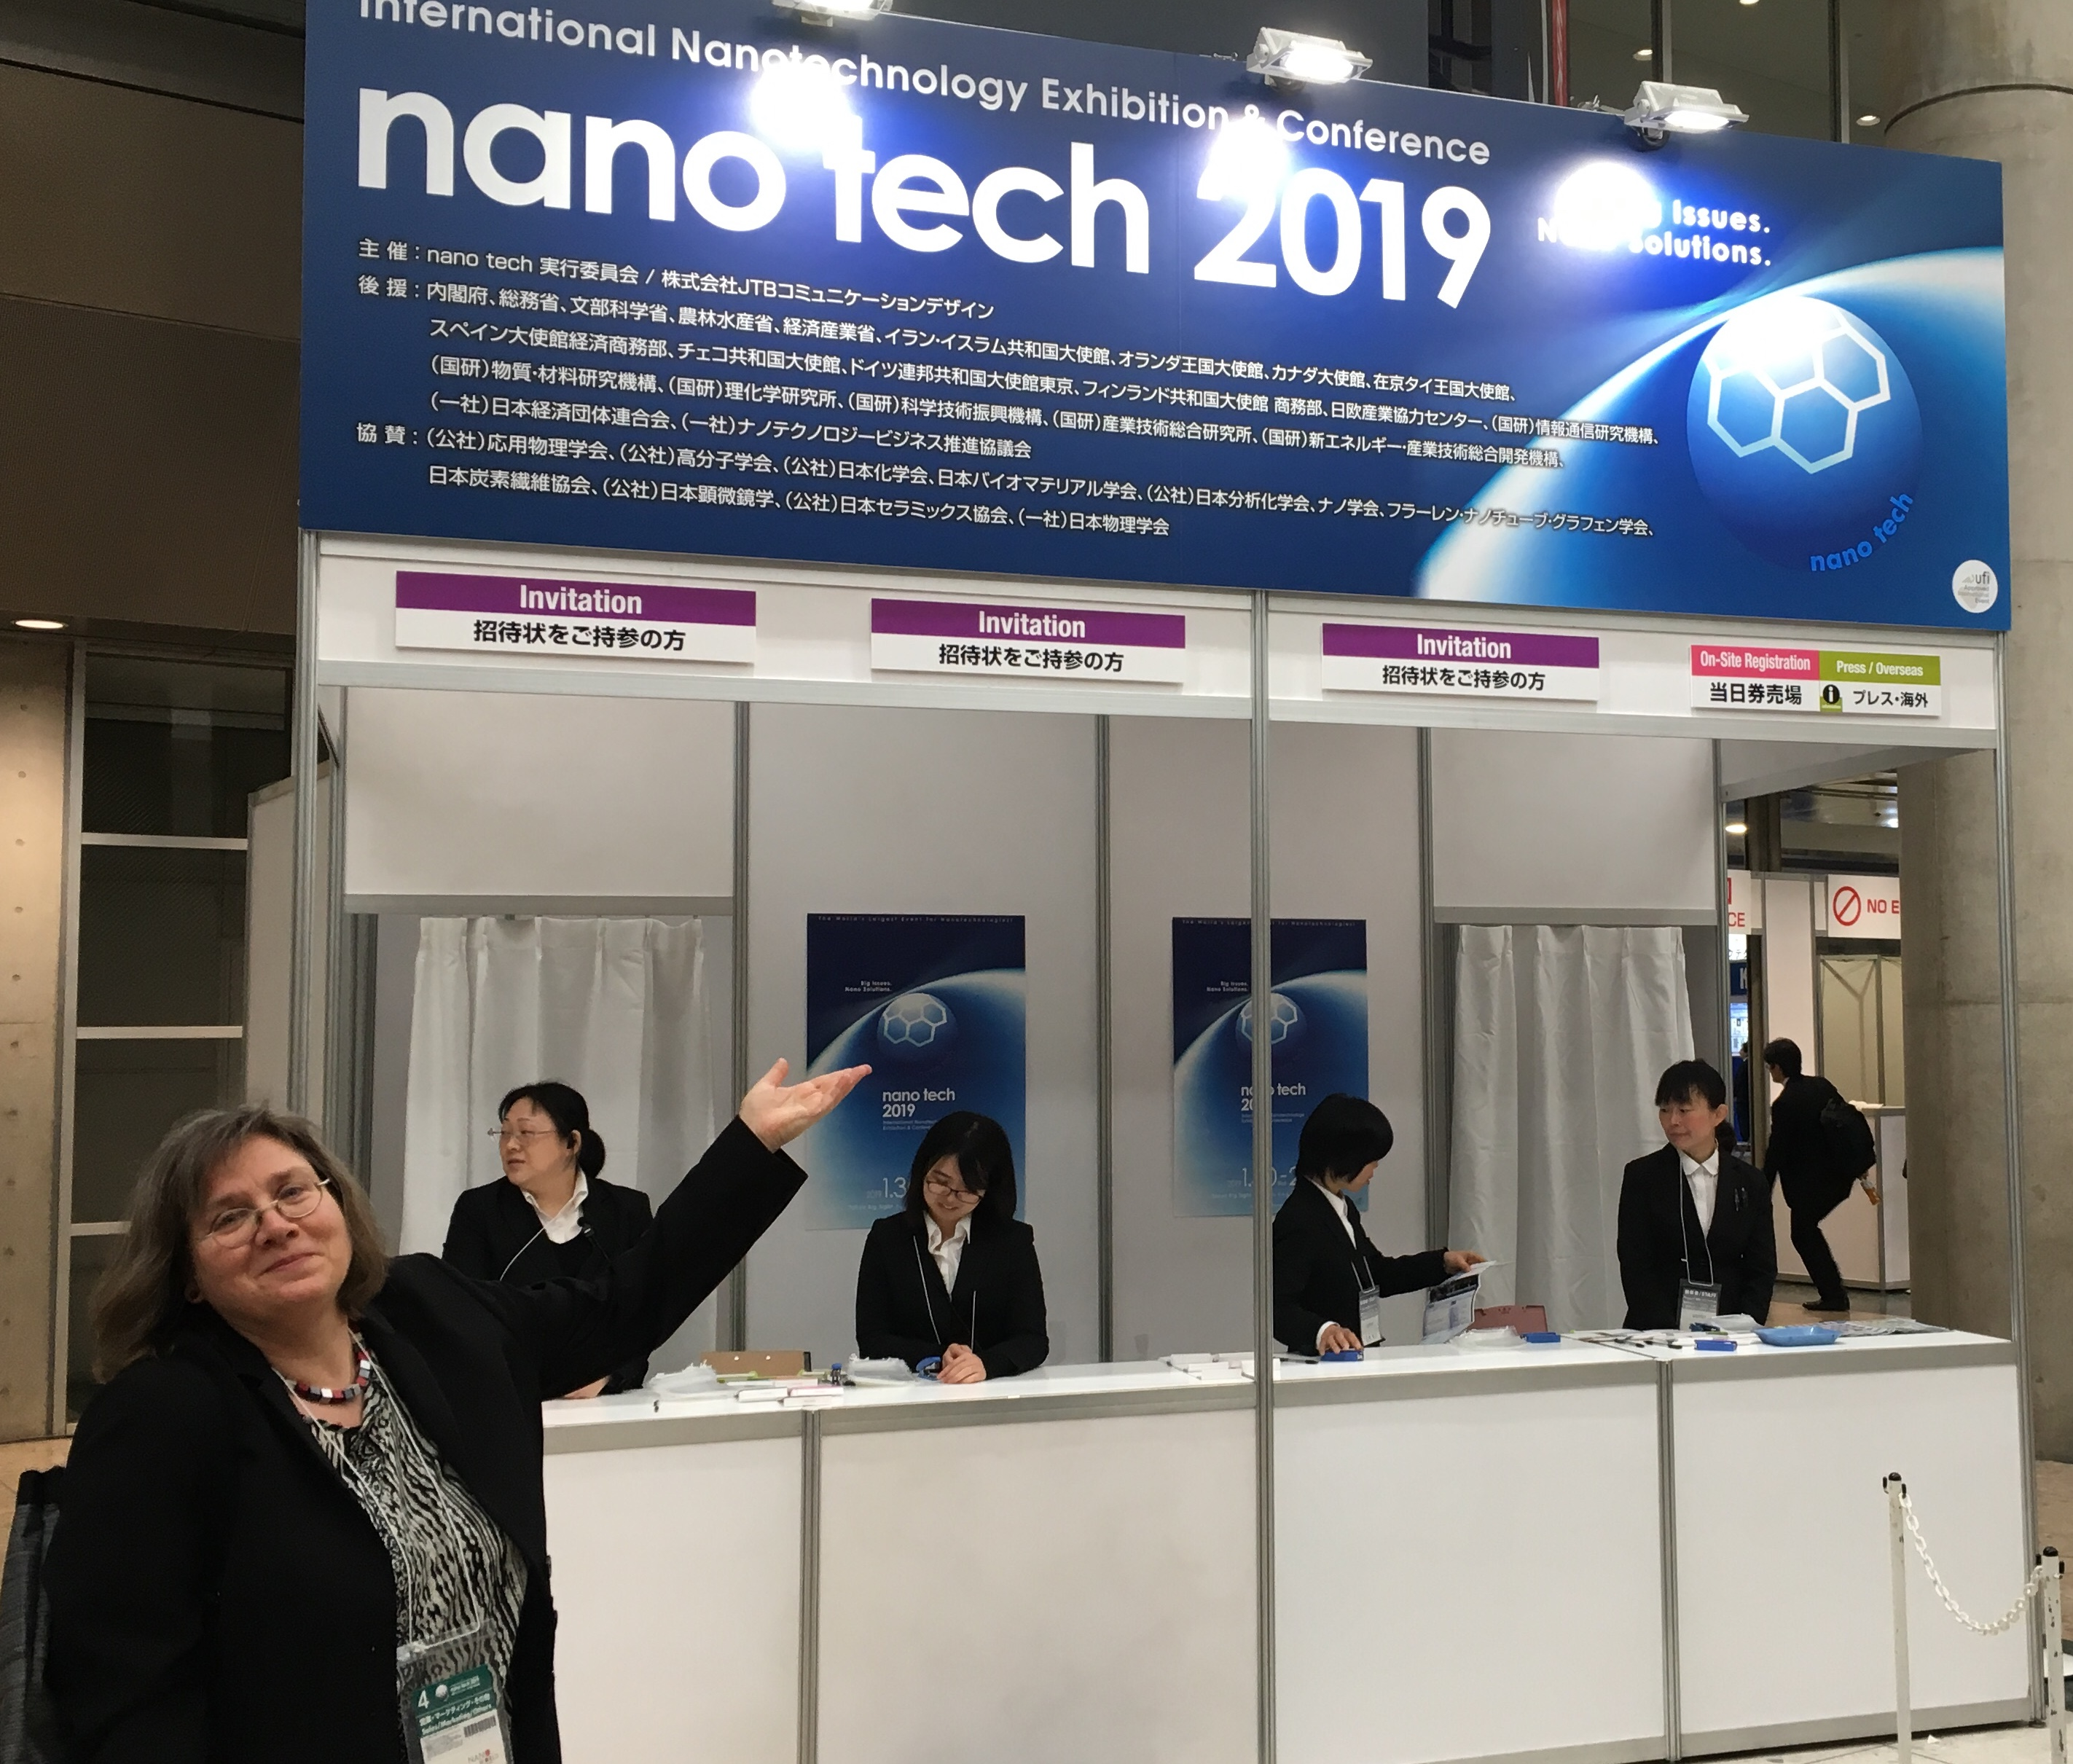 visit our distributor for NANOSENSORS AFM probes in Japan Toyo Technica at nano tech 2019